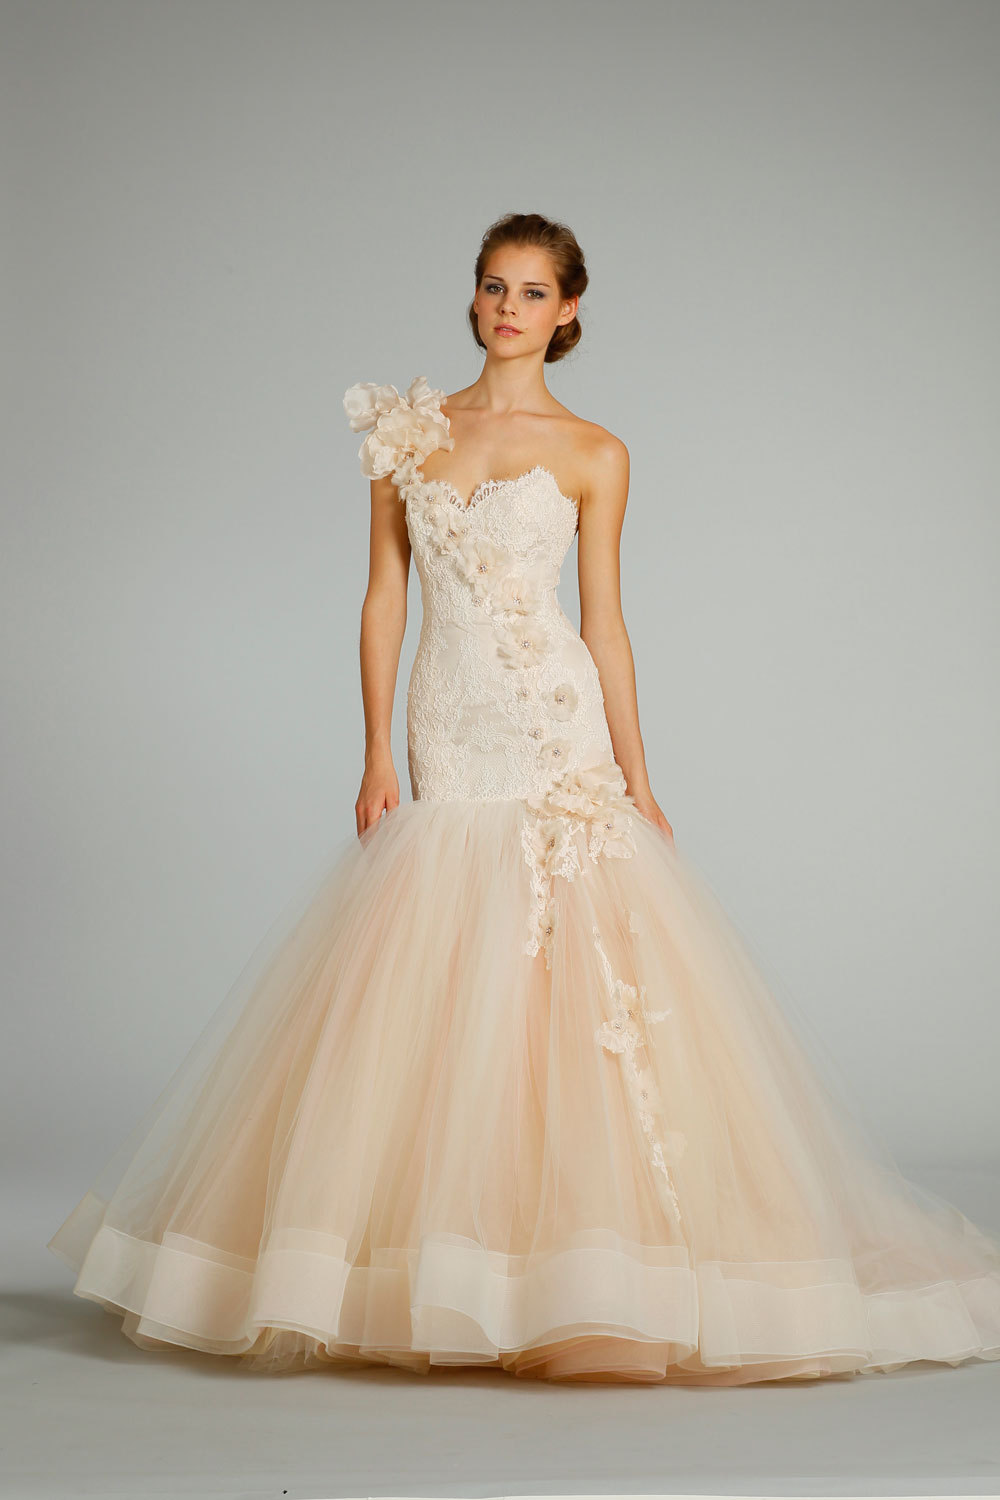 2012 wedding dress Lazaro bridal gowns 3259 peach tulle mermaid